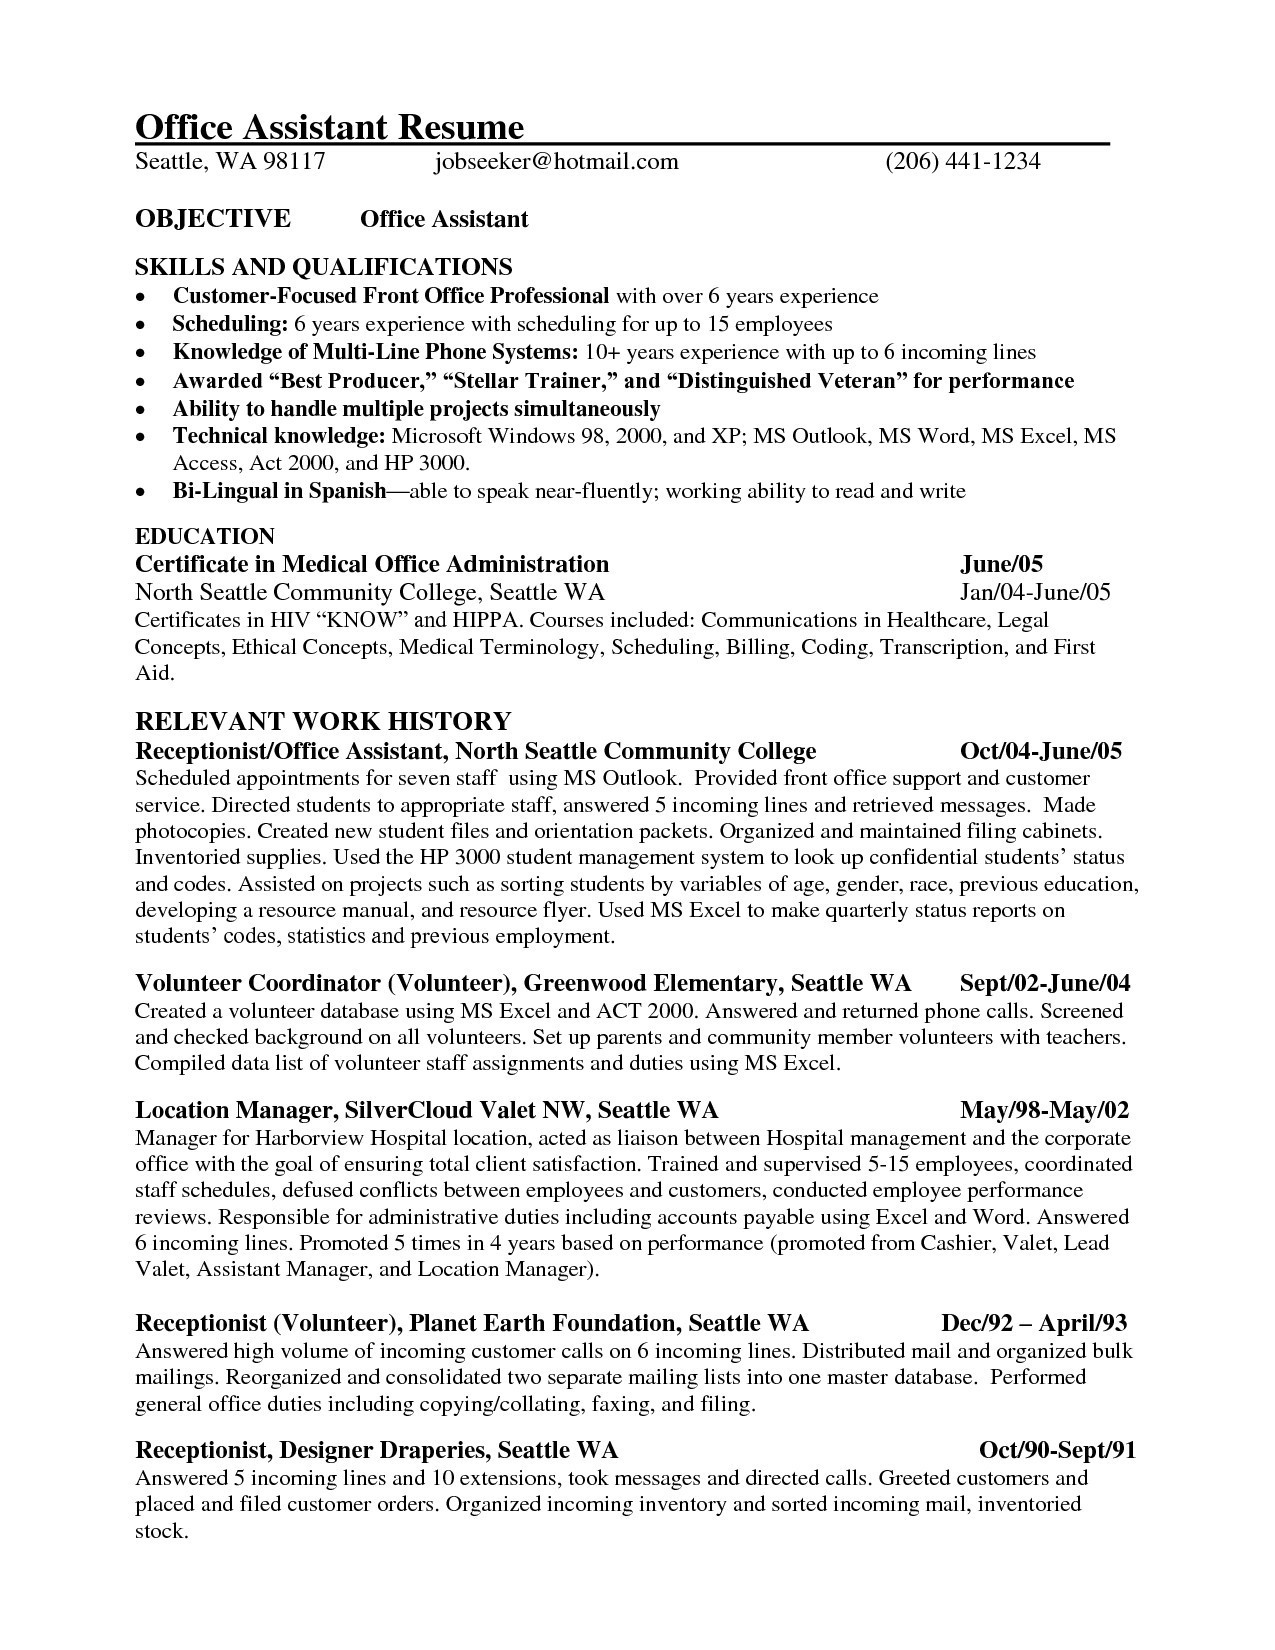 Resume for Medical Office Manager - Medical Fice Manager Resume Examples New Fice Manager Job